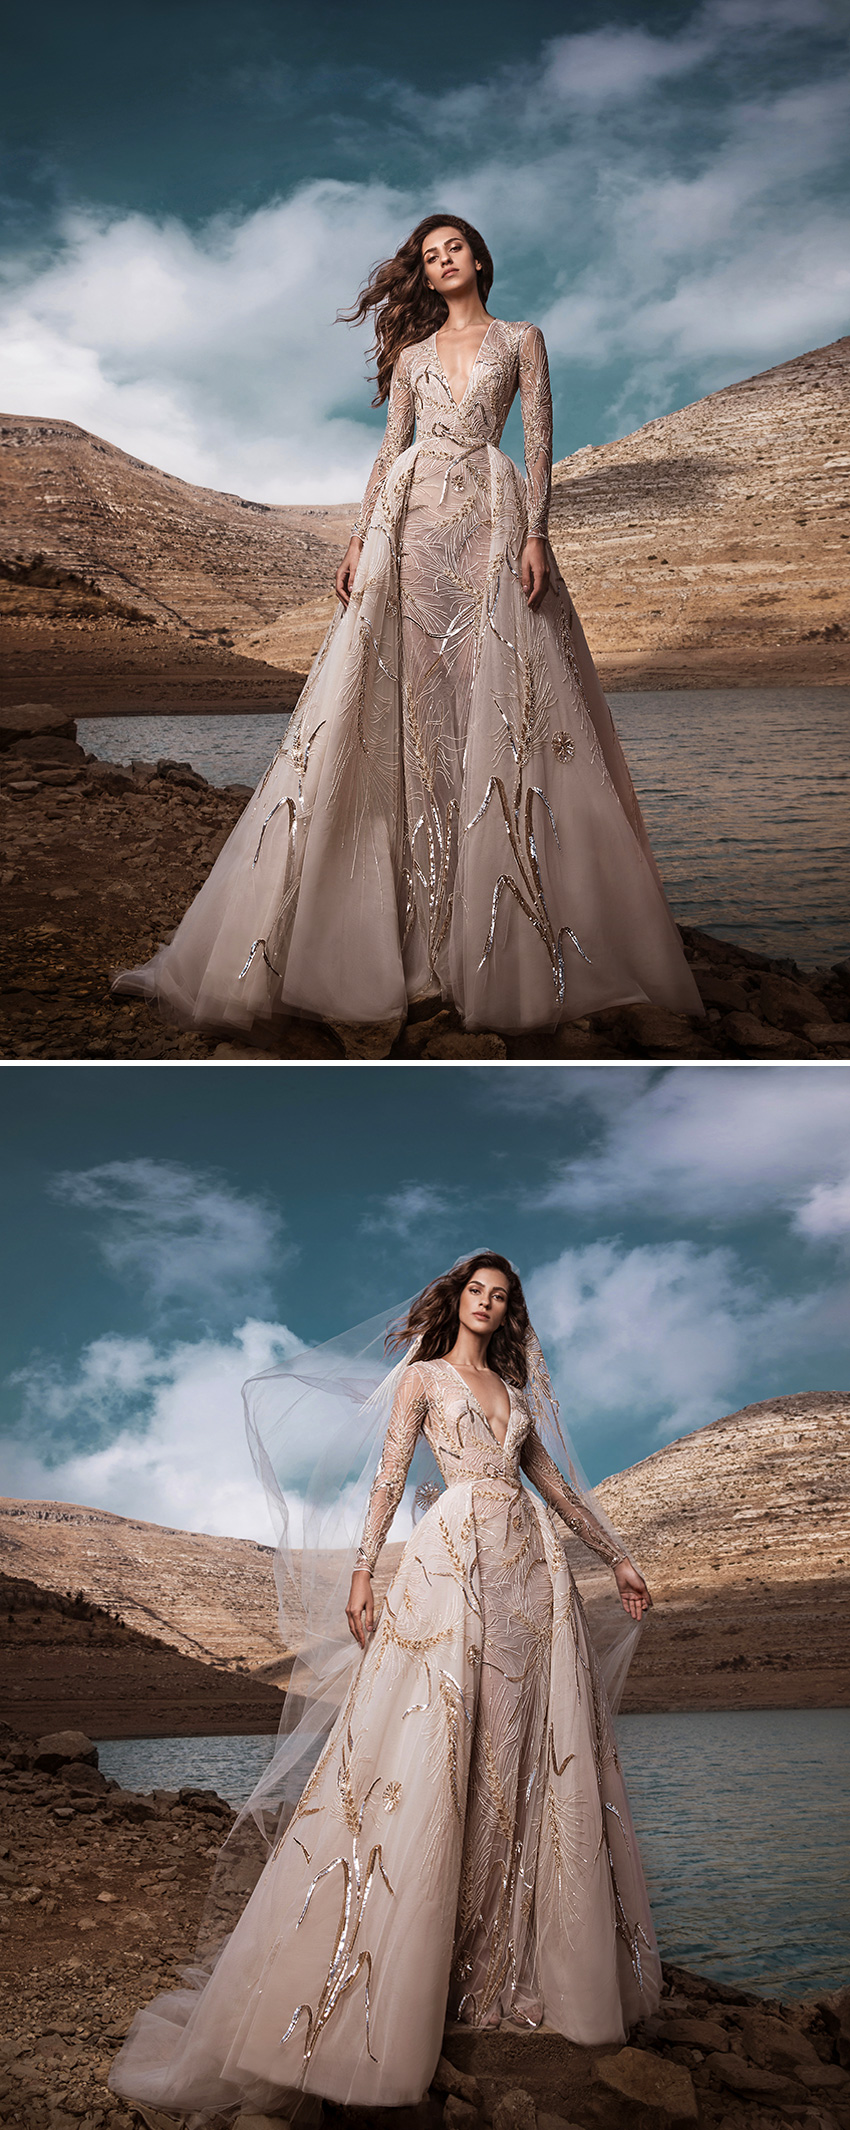 Zuhair Murad Fall 2021 bridal collection named Le temps de l'Automne featured in Perfect Wedding Magazine